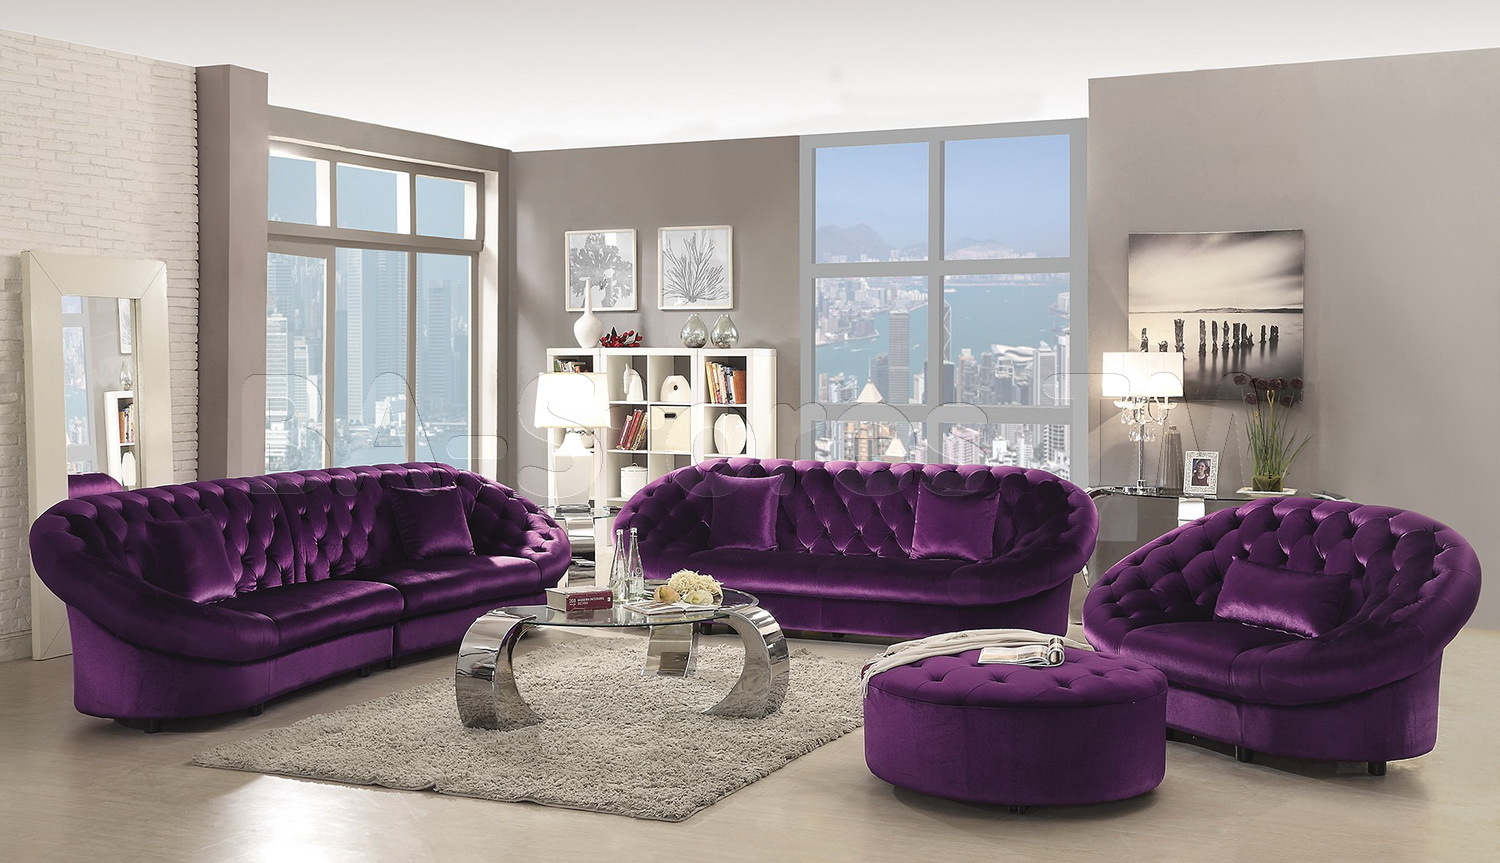 Affordable Tufted Sofa | Mauve Sofa | Purple Sofa